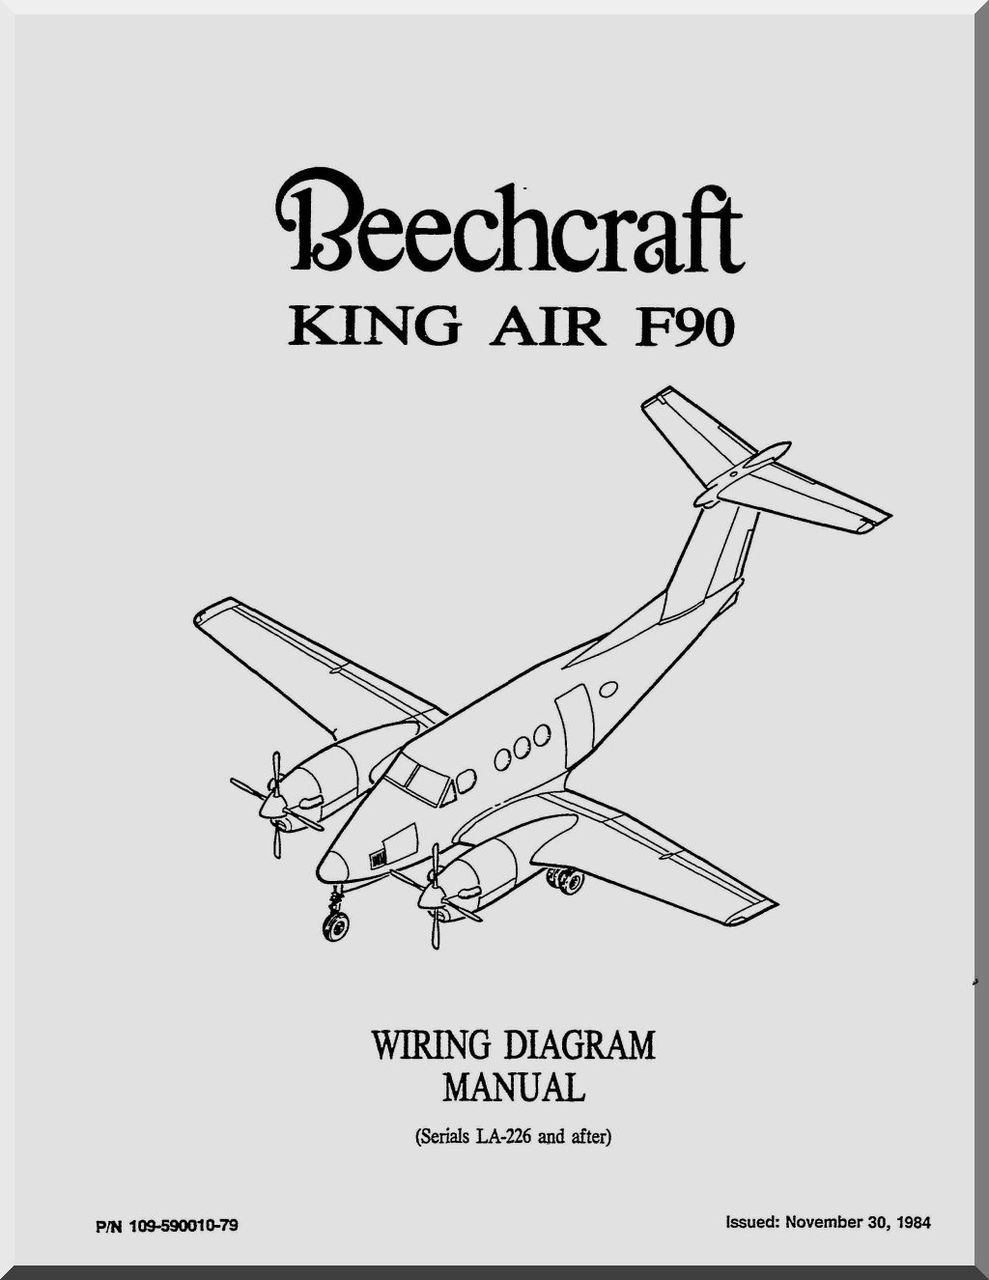 Beechcraft King Air F 90 Aircraft Wiring Diagram Manual